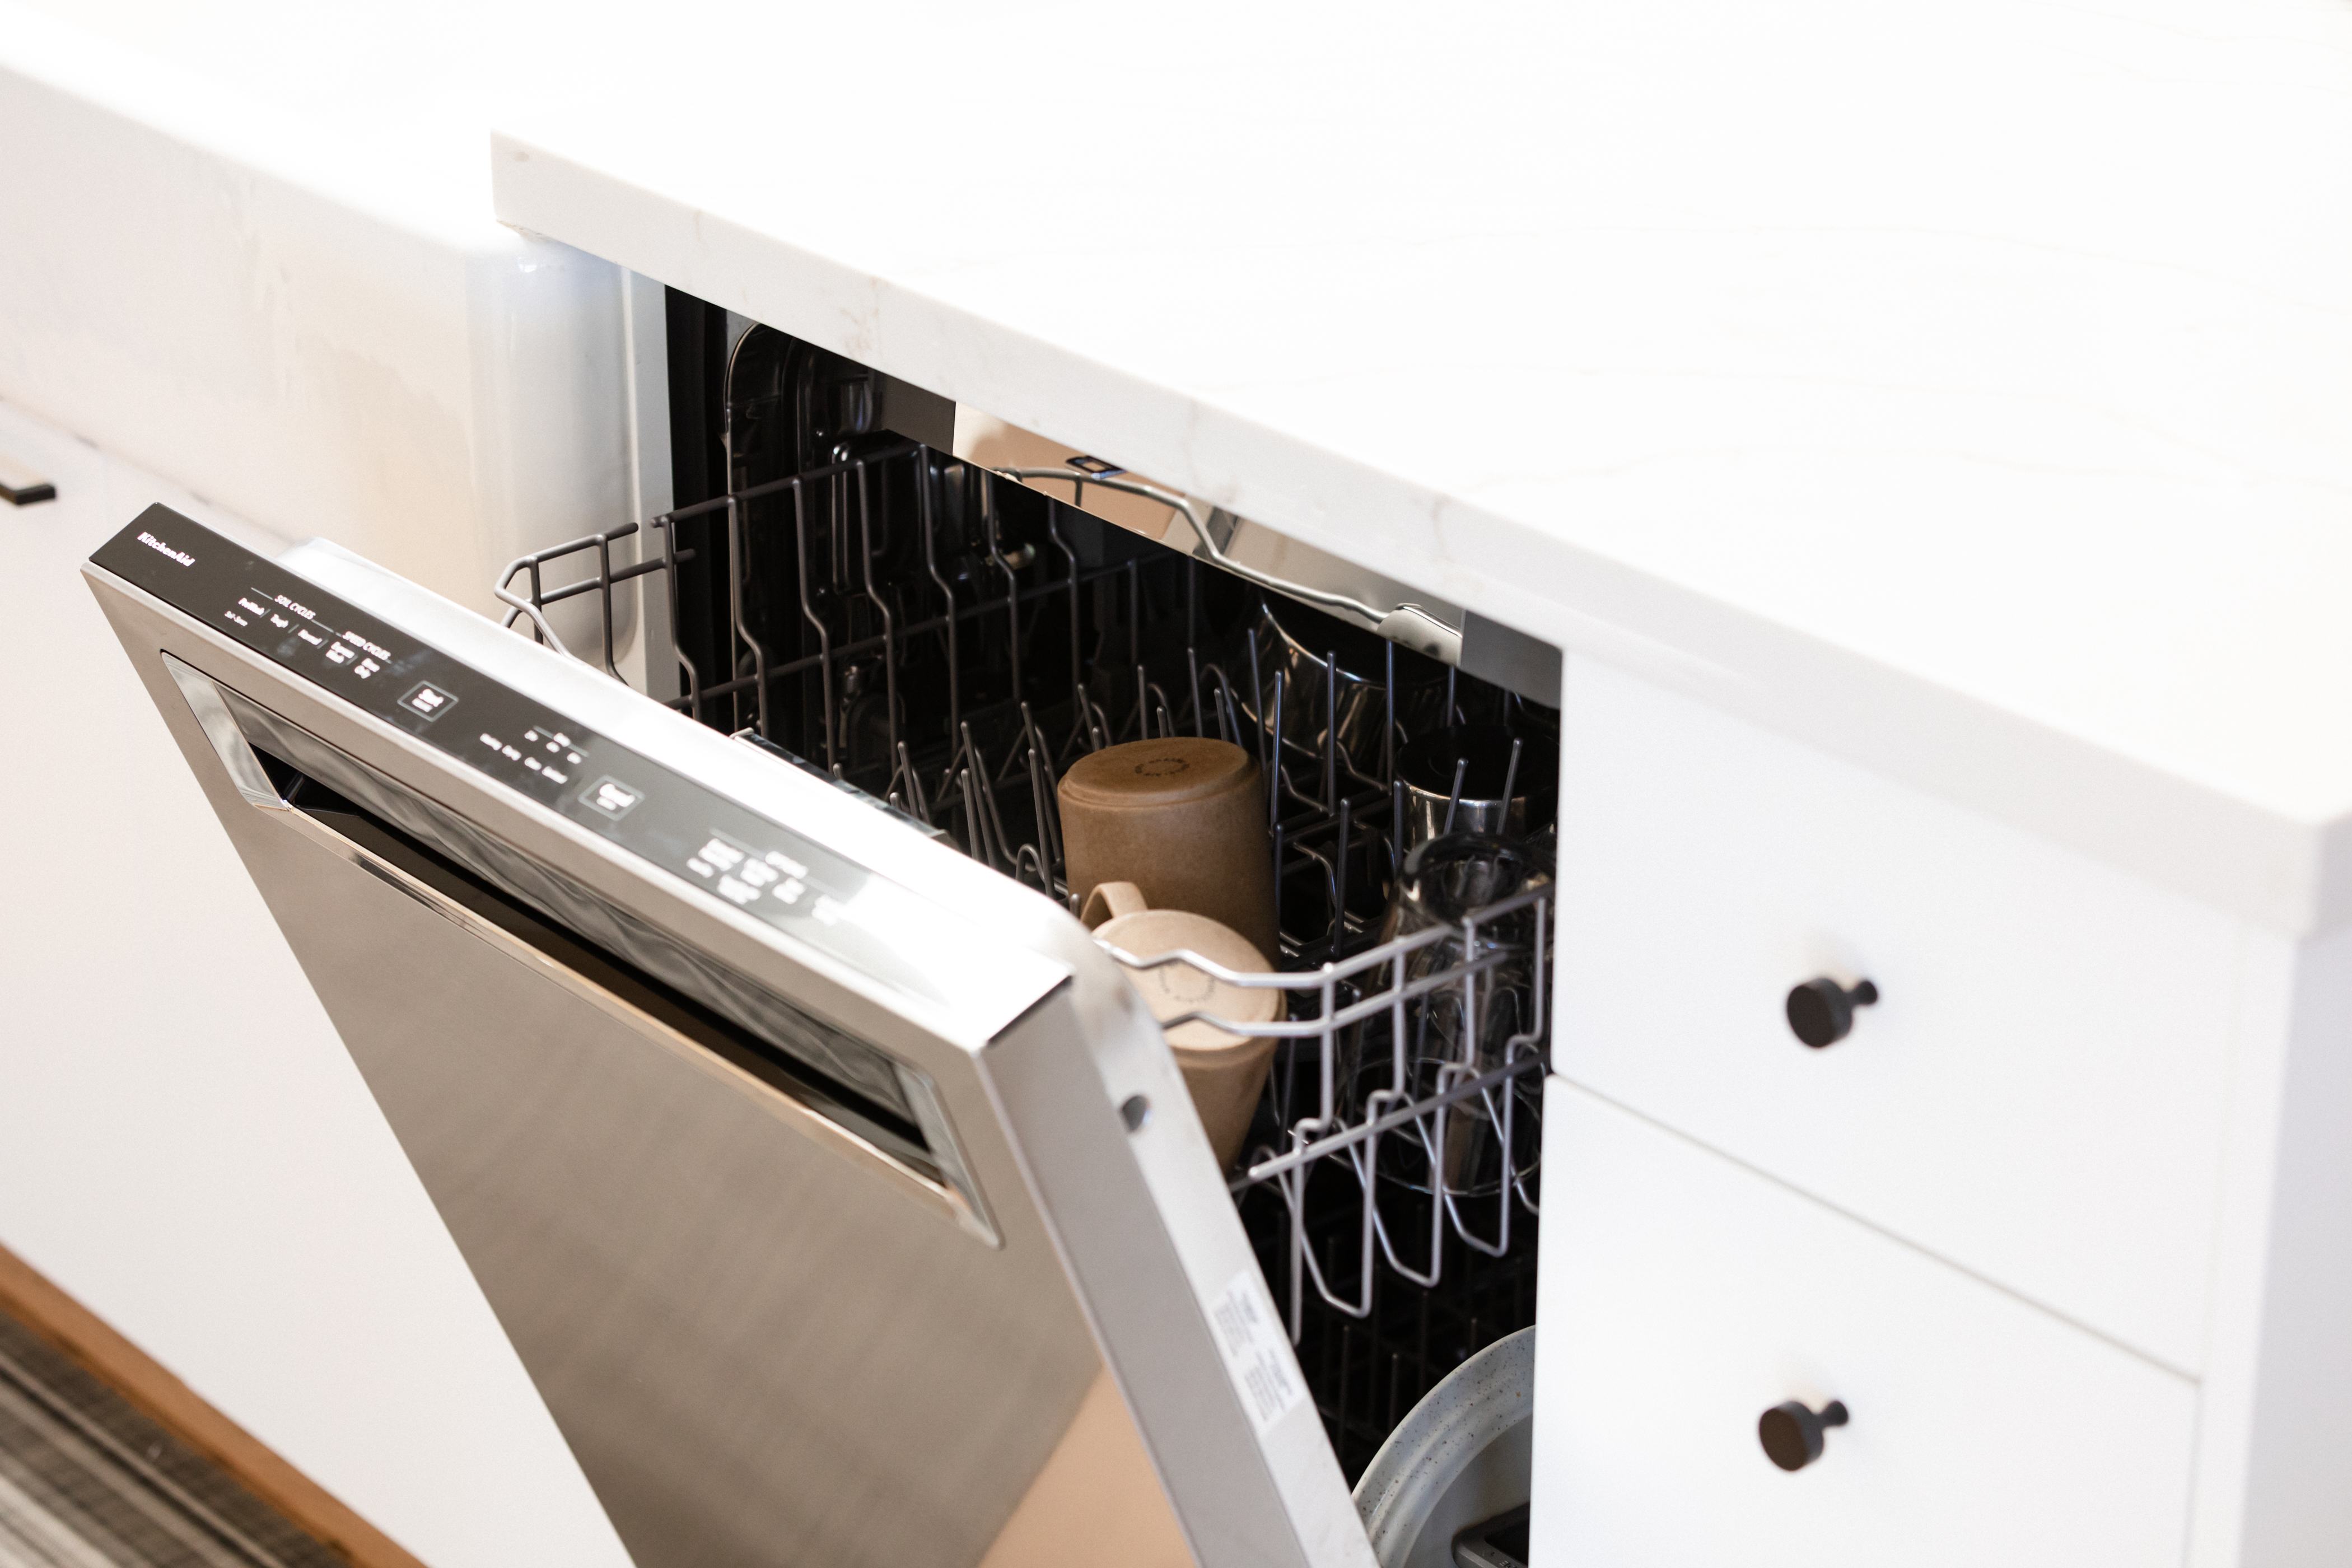 7 Mistakes You're Probably Making With Your Dishwasher